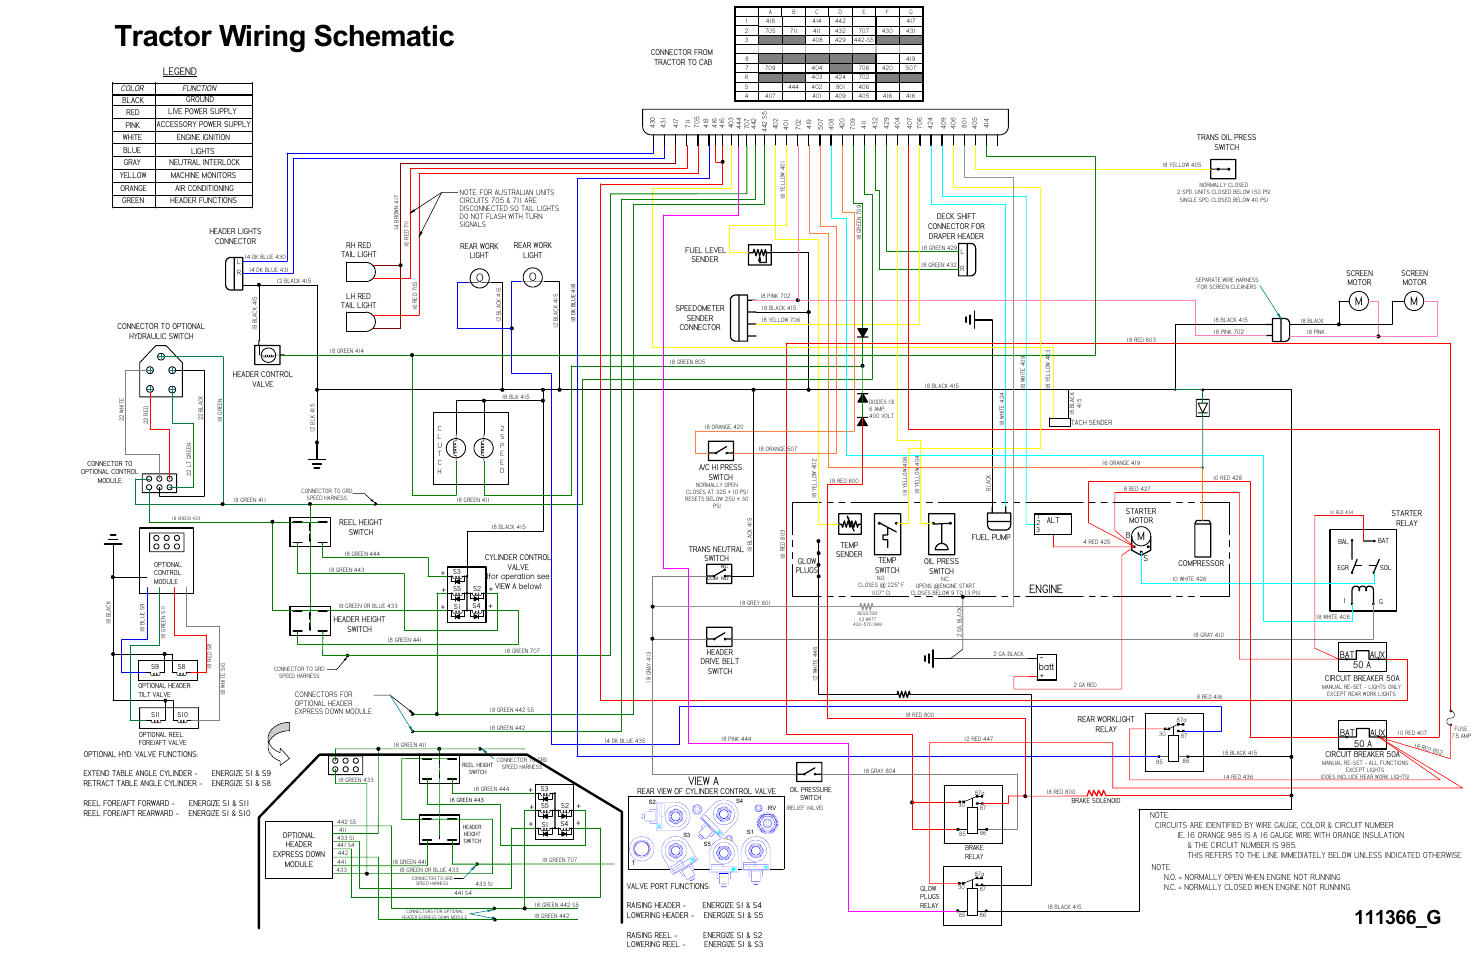 Tractor wiring schematic, Mengine, View a | MacDon 9352i SP ... on